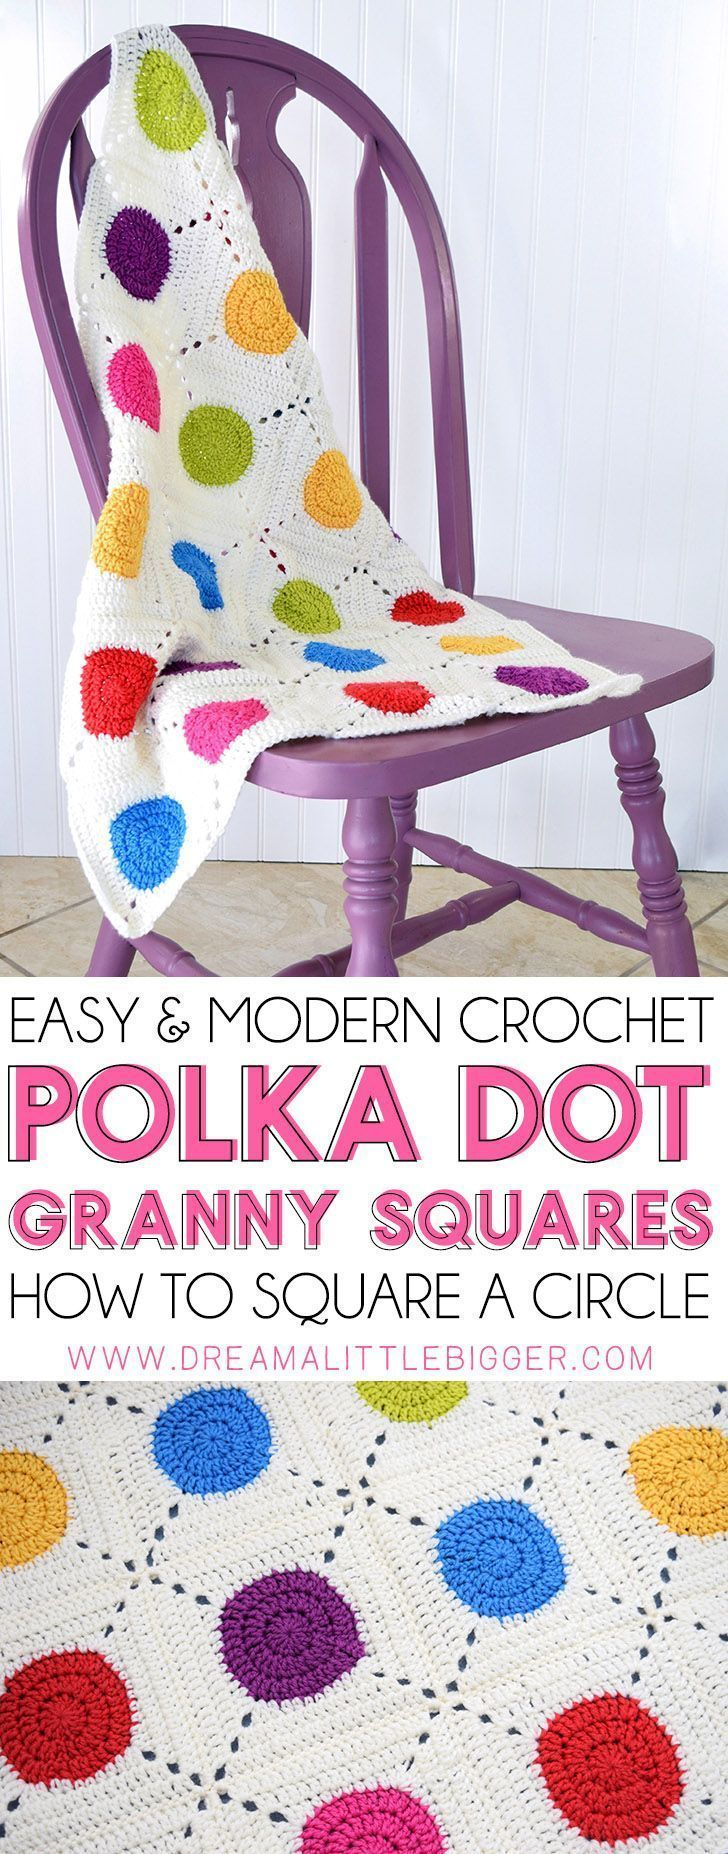 How to Make Circle Granny Squares #grannysquares